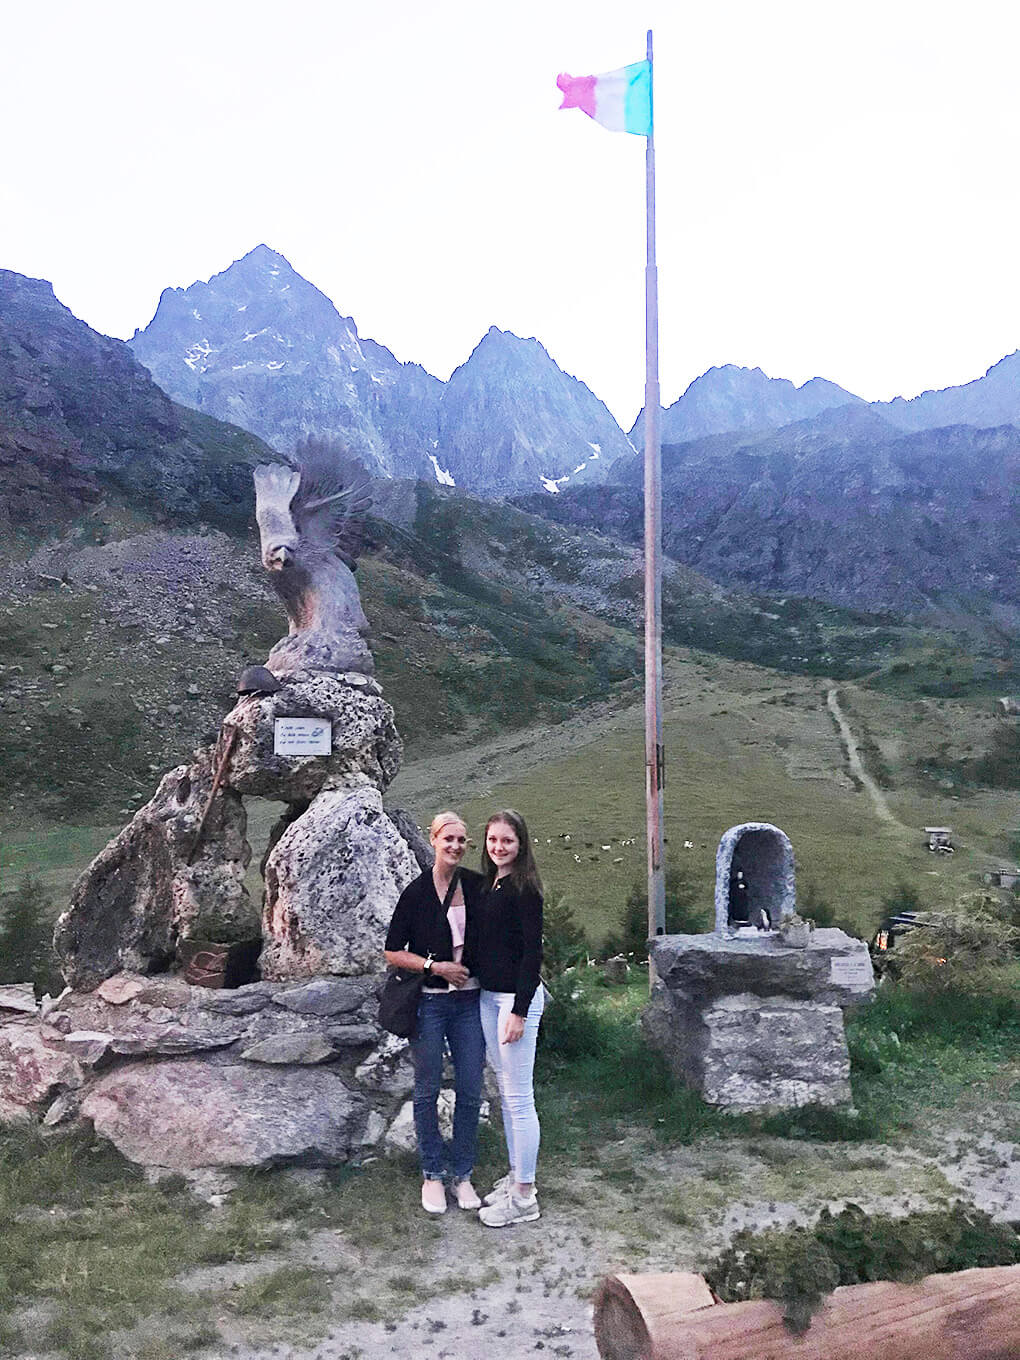 Top 17 Things from Italy www.sarahkayhoffman.com SKH Ceci Crissolo #travel #italy #crissolo #mountains